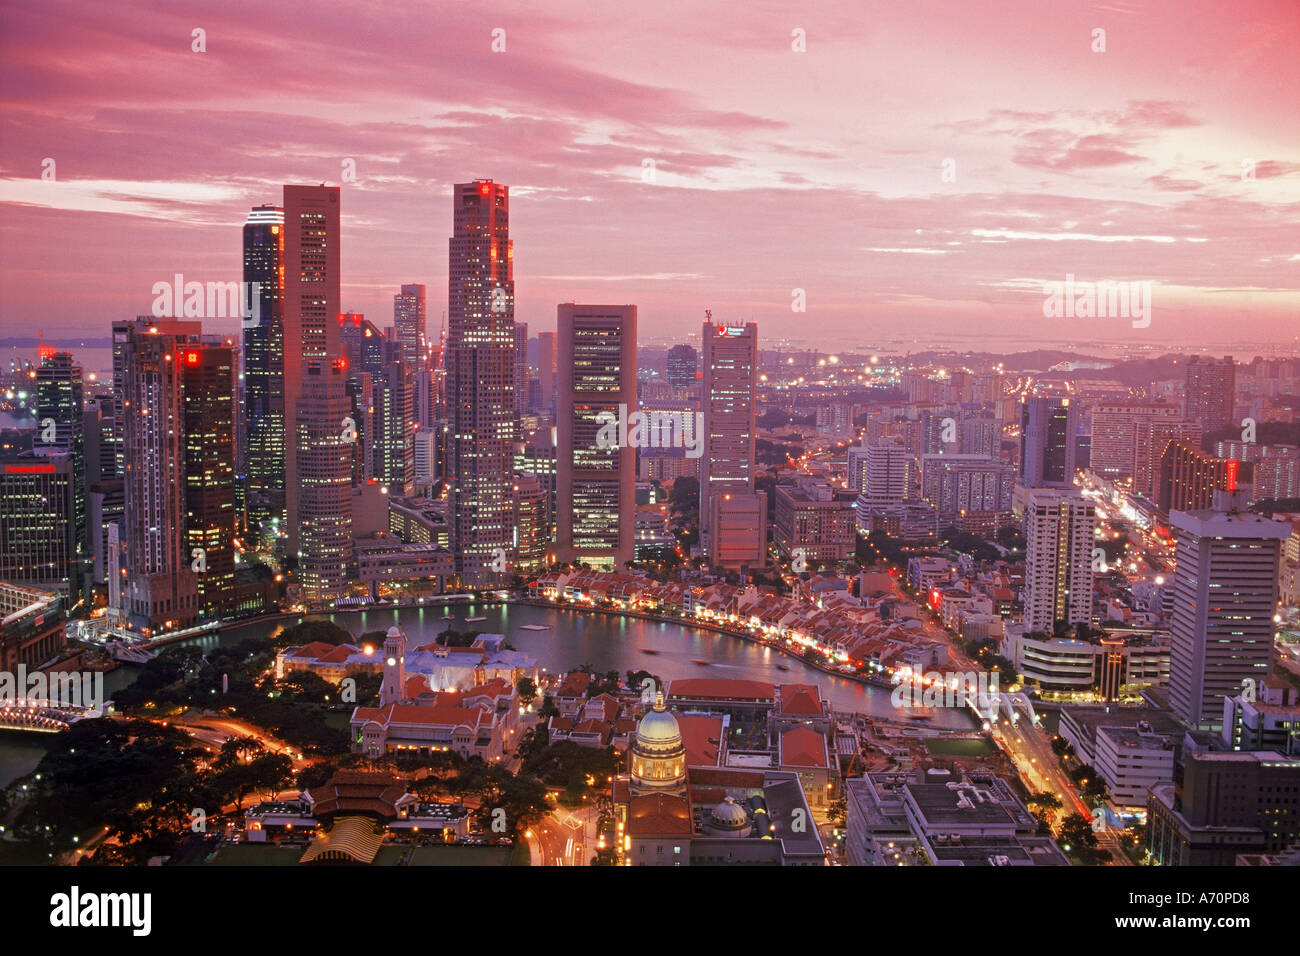 Central business district of Singapore at sunset - Stock Image